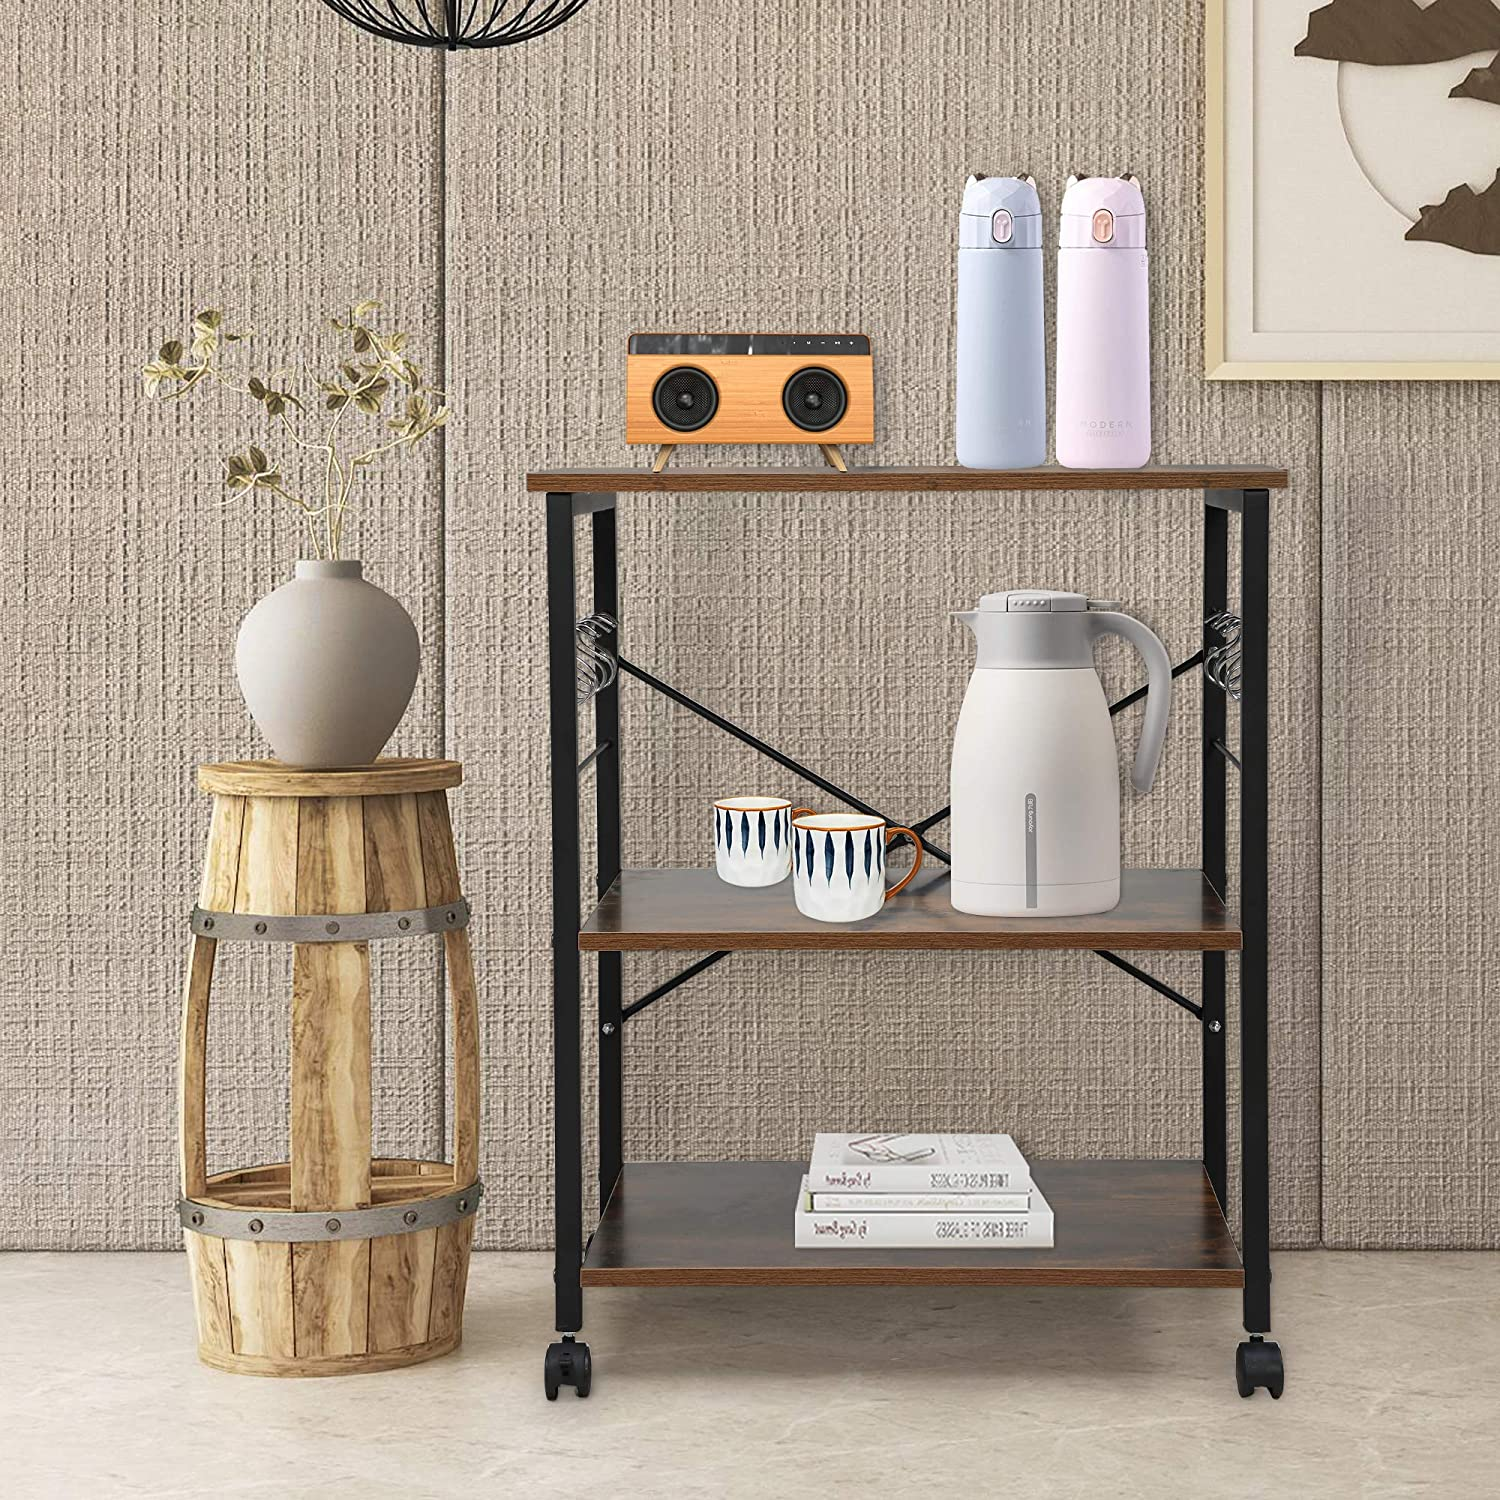 Brown Dining Room Utility Cart Removable Tray JAXPETY Industrial Style 3-Tier Bar Mobile Serving Kitchen Cart with Casters Wood Metal Serving Trolley